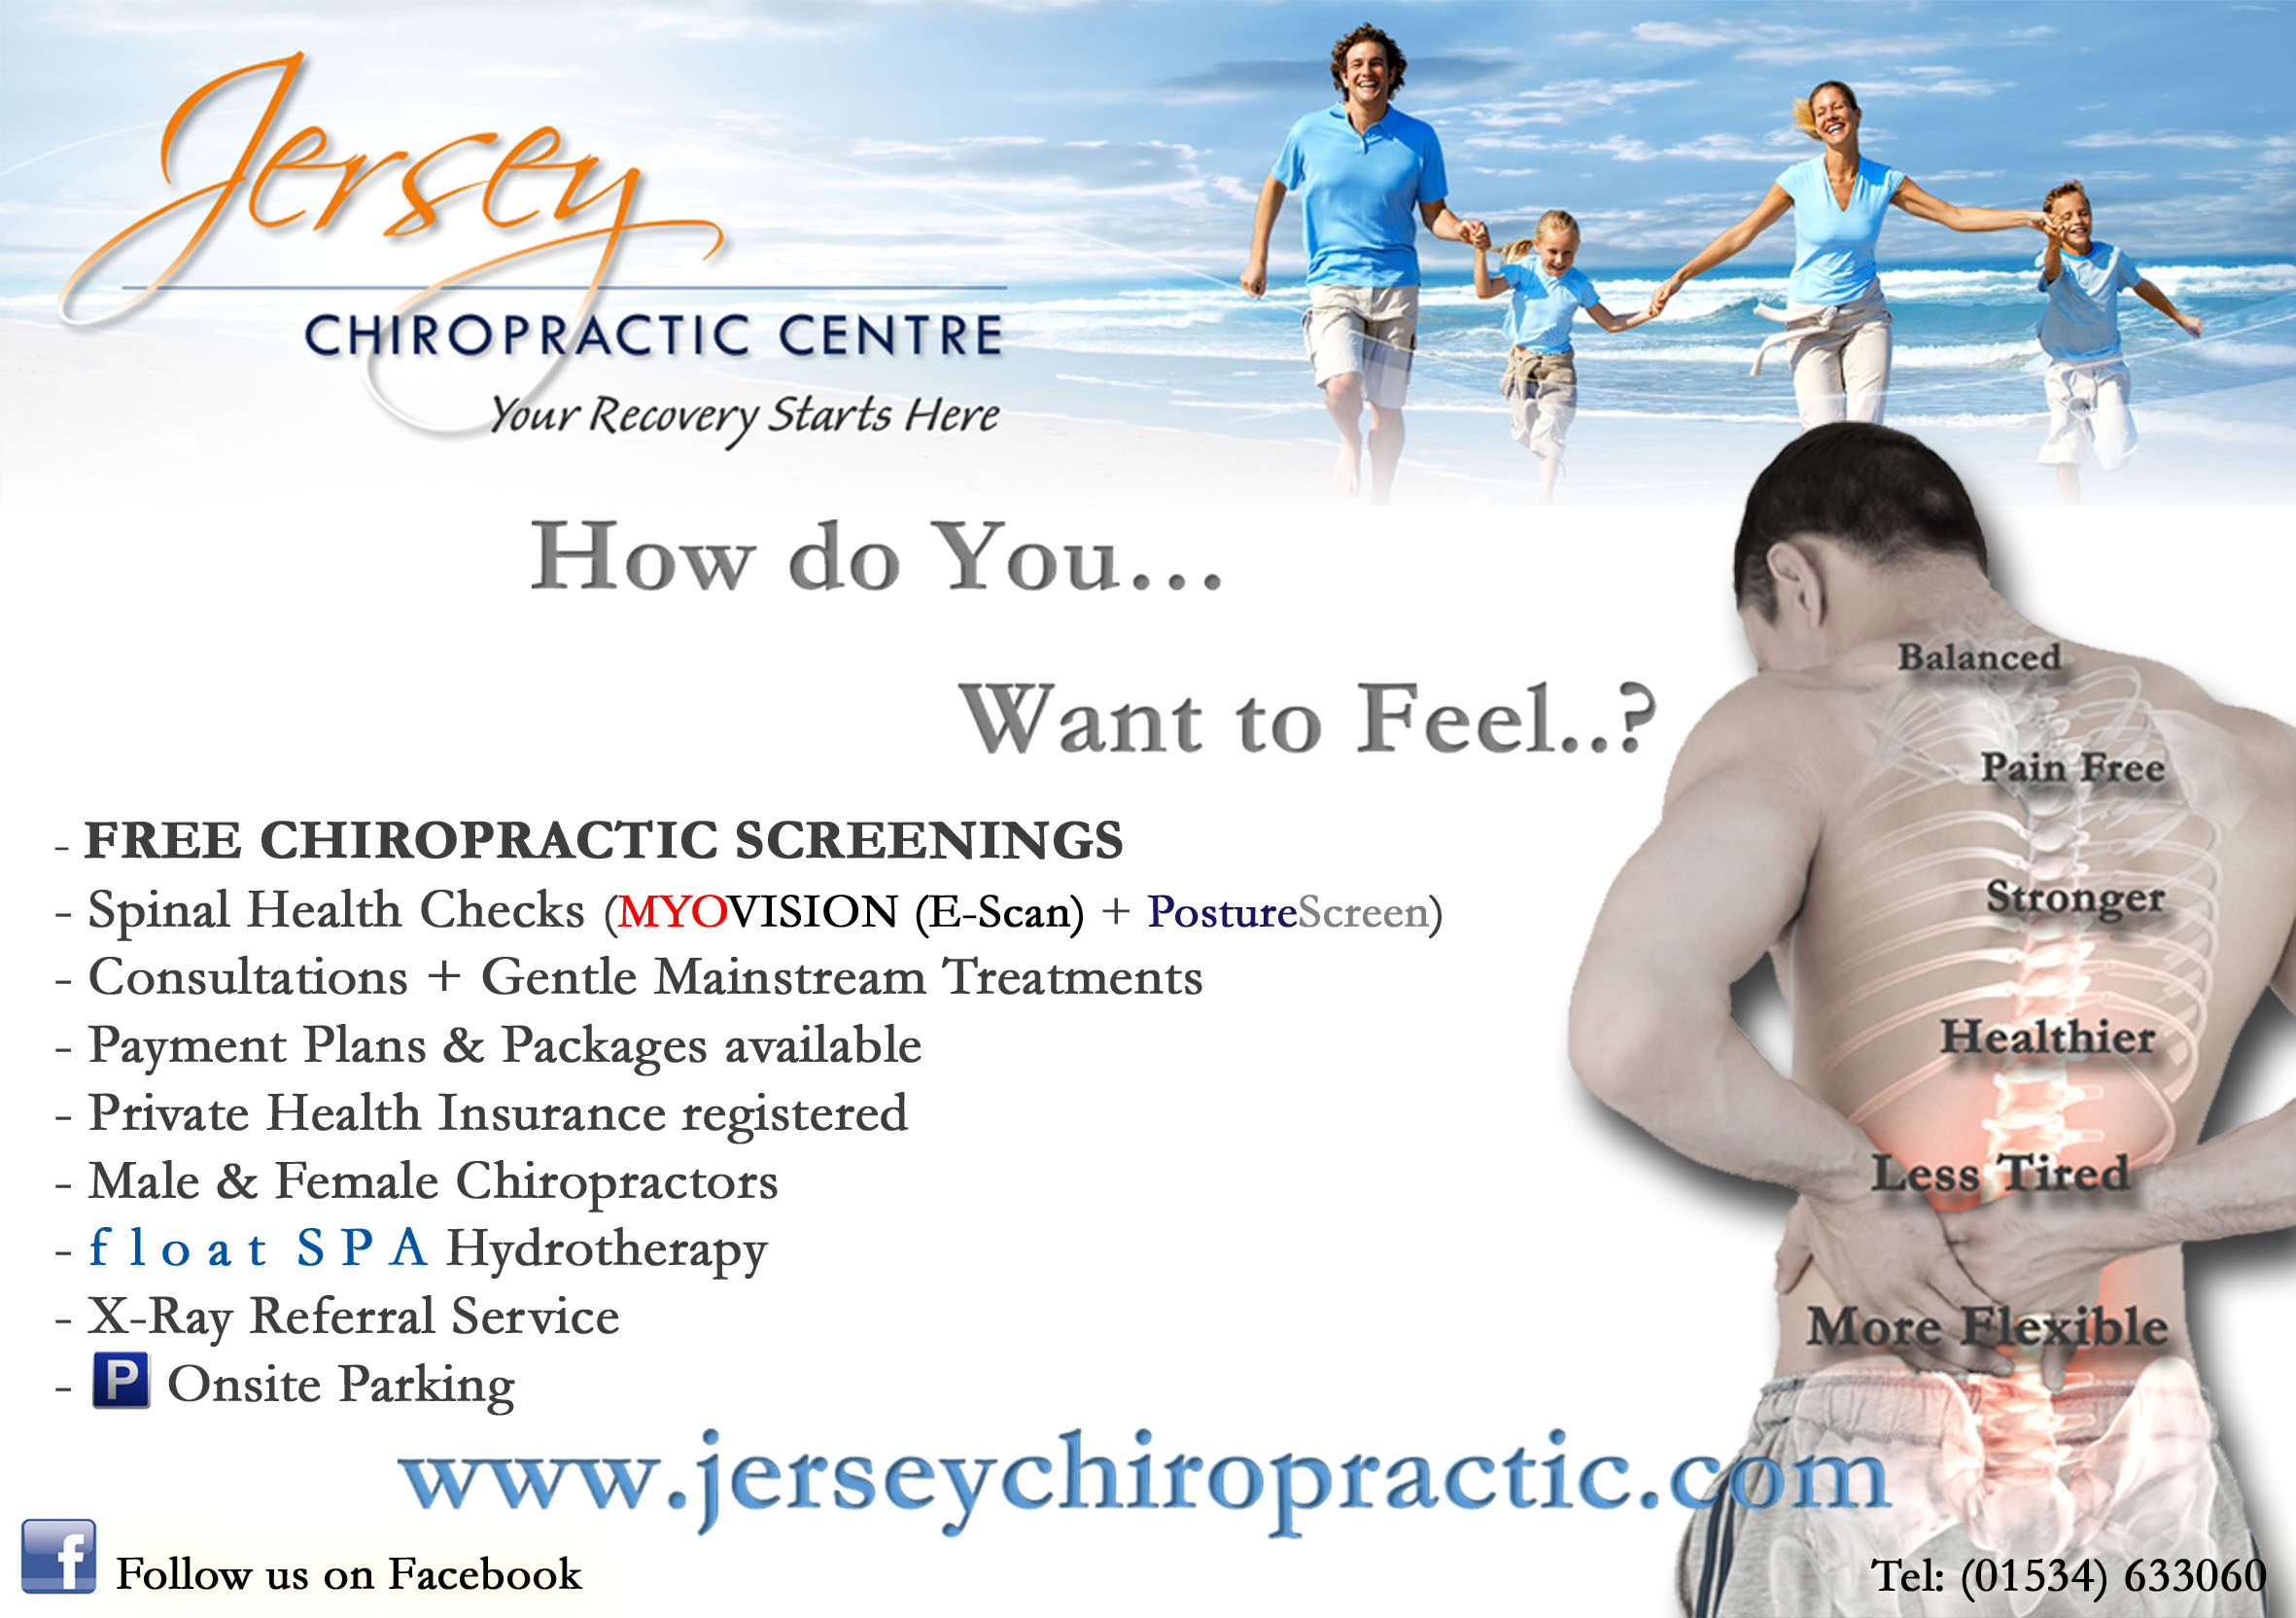 JERSEY CHIROPRACTIC CENTRE